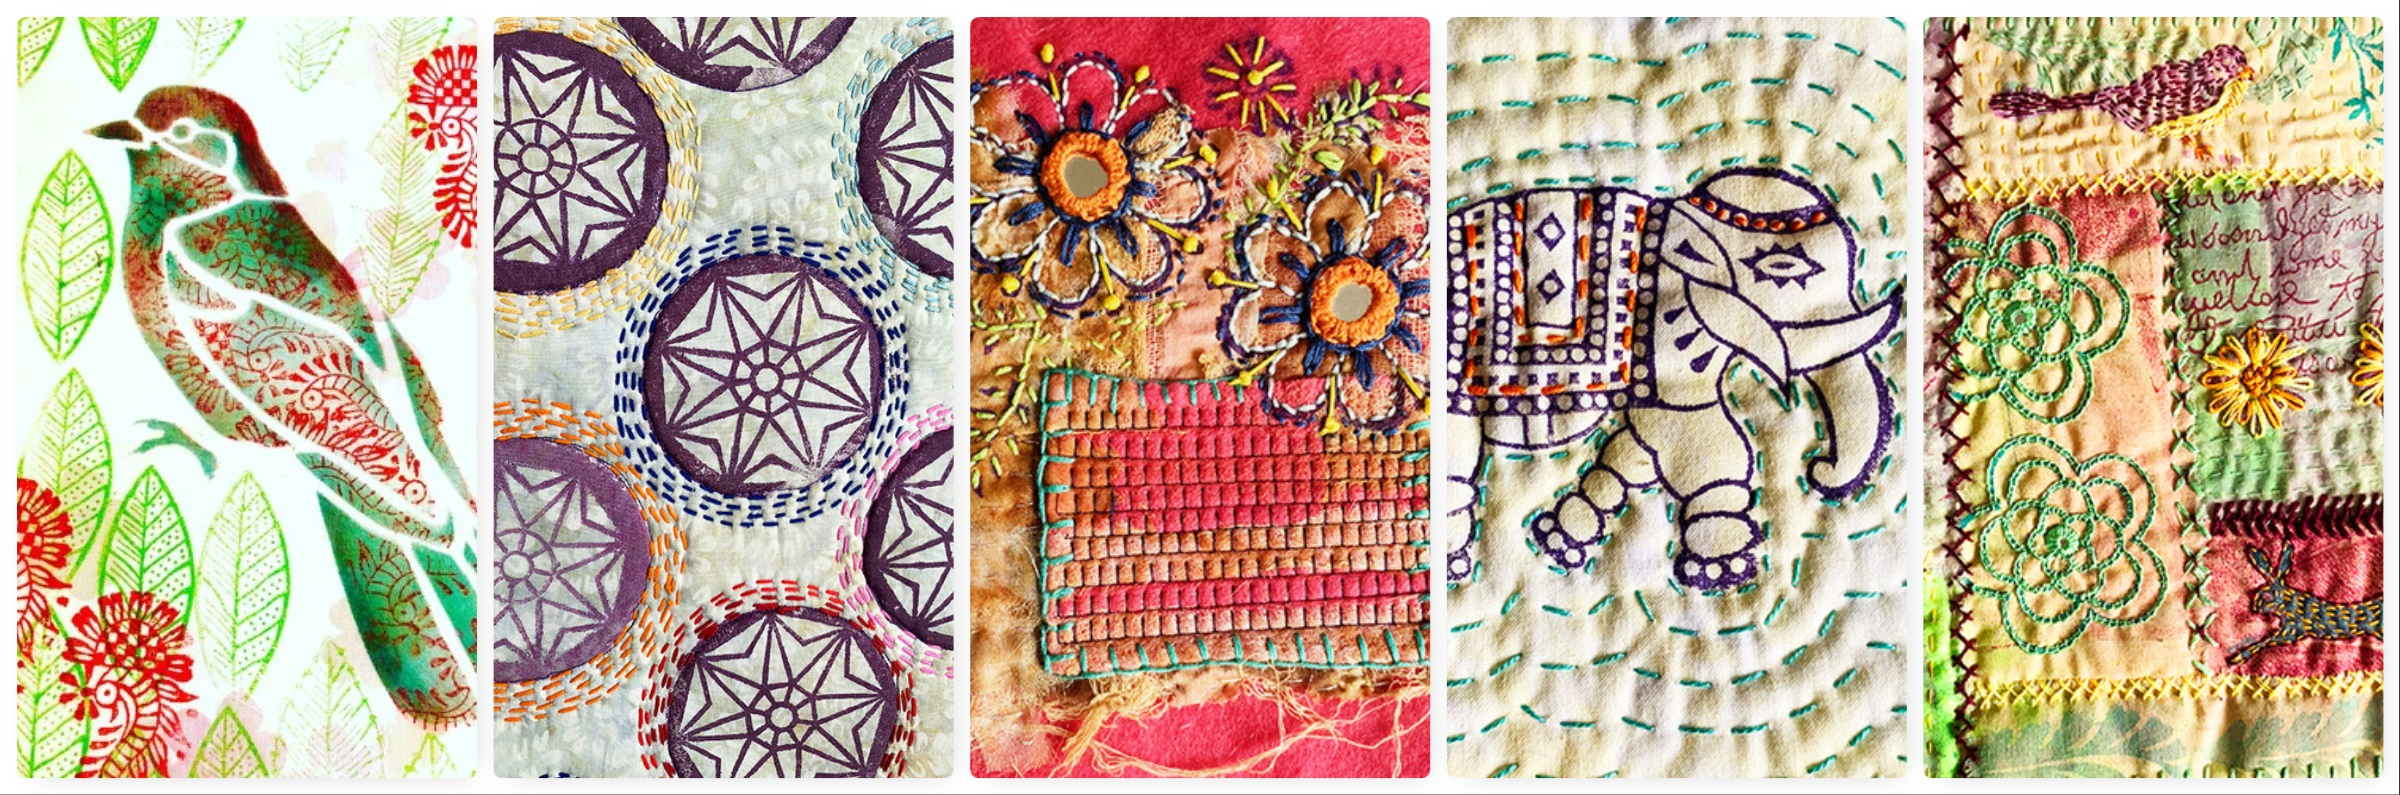 A Textile Weekend in Hampshire, May 2019